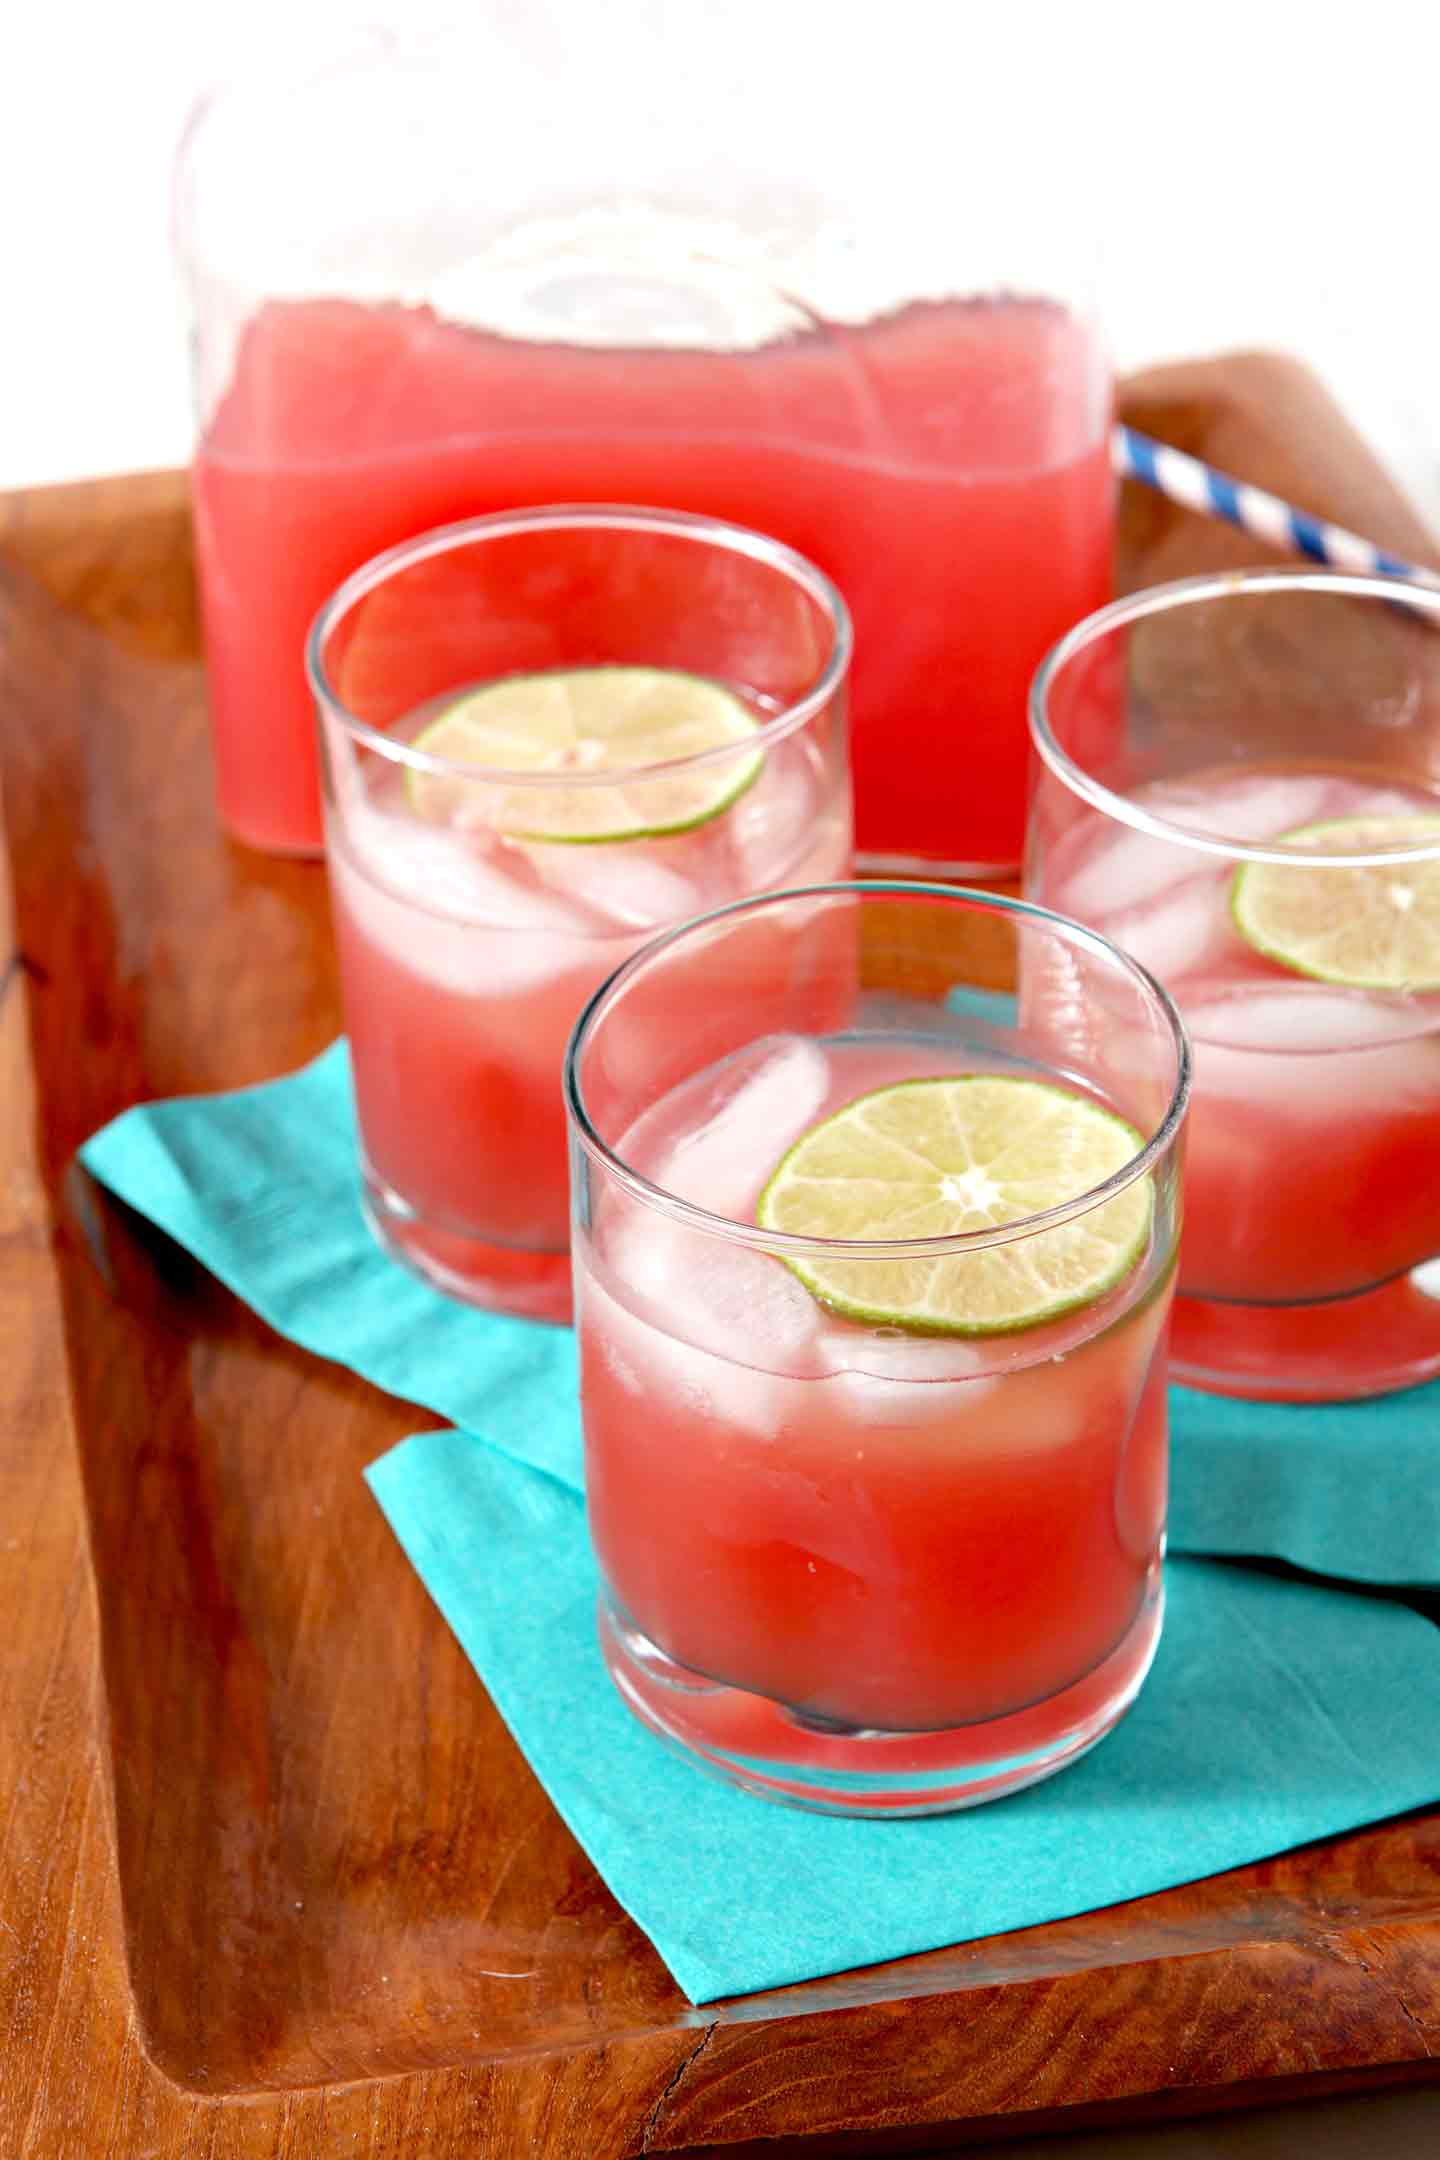 Spiked Watermelon Limeade is the pitcher drink of our dreams! Featuring just four ingredients - watermelon, mint, lime and vodka - this beautiful red cocktail makes an amazing summertime sipper! #recipe #cocktail